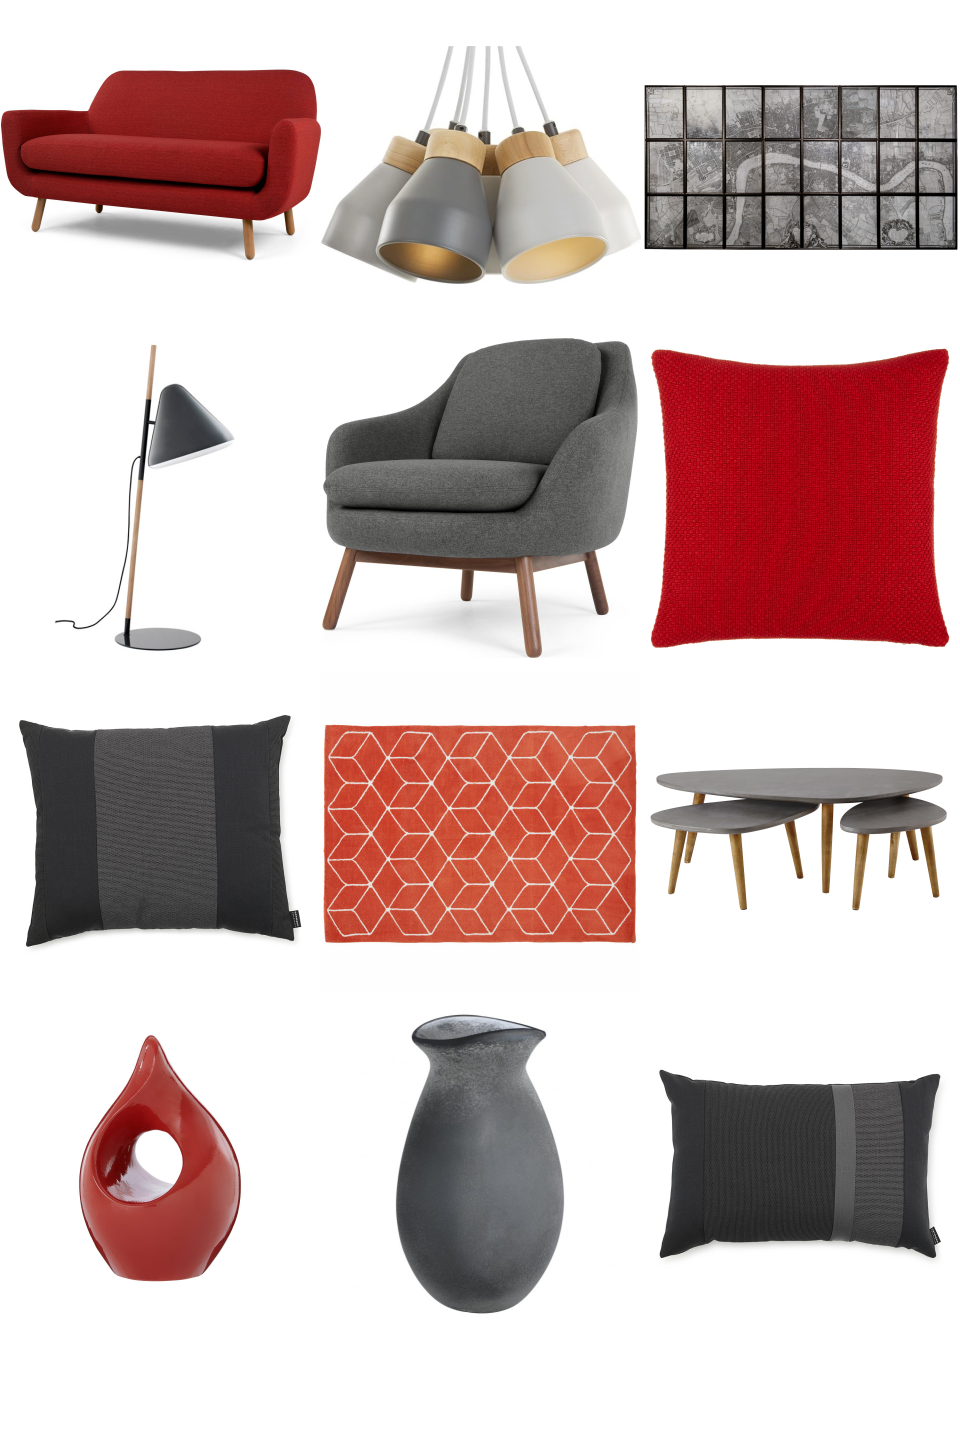 Red And Grey Living Room Furnishful S Living Room Ideas Inspiration Boards Furnishful